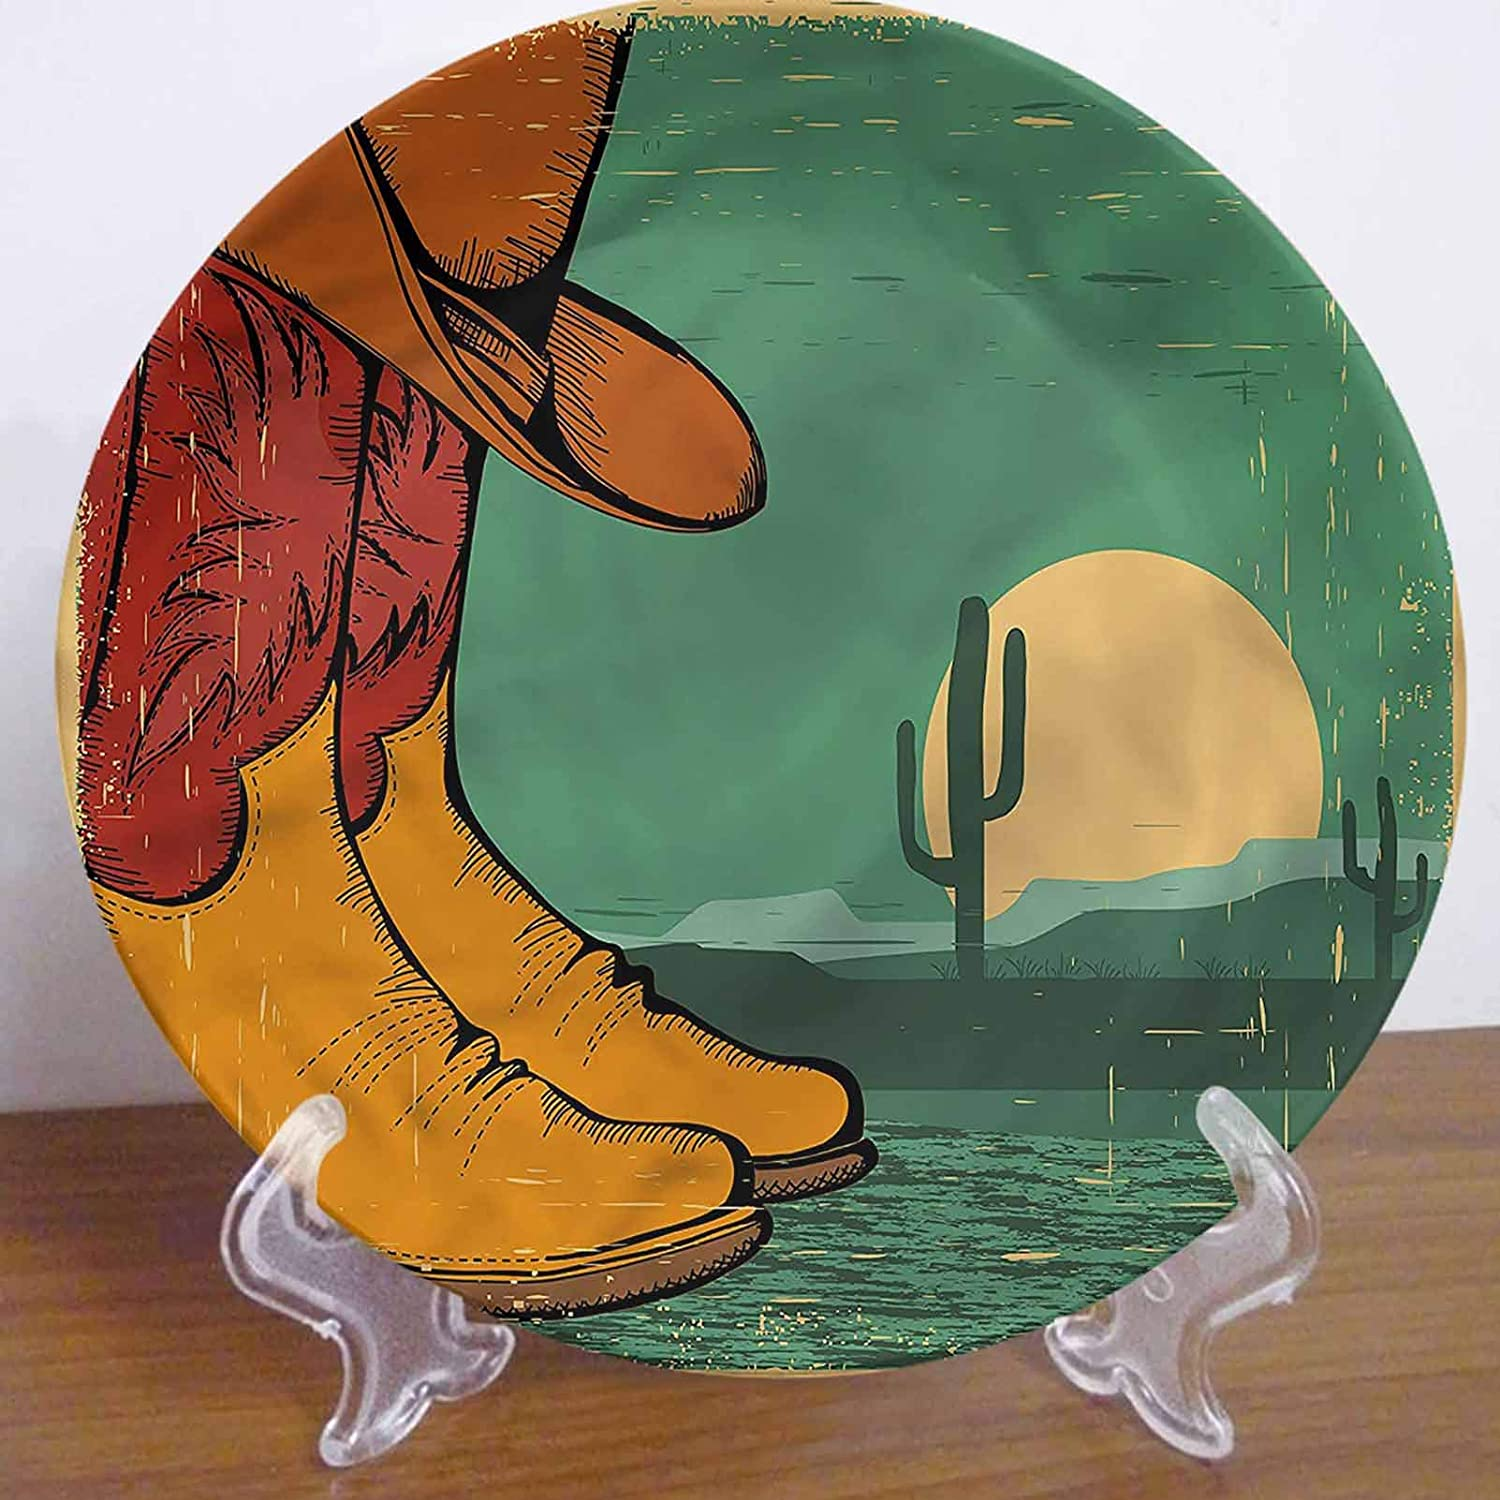 LCGGDB 6 Inch Western Pattern Ceramic Decorative Plate,Desert Landscape Boots Hat Tableware Plate Decor Accessory for Pasta, Salad,Party Kitchen Home Decor